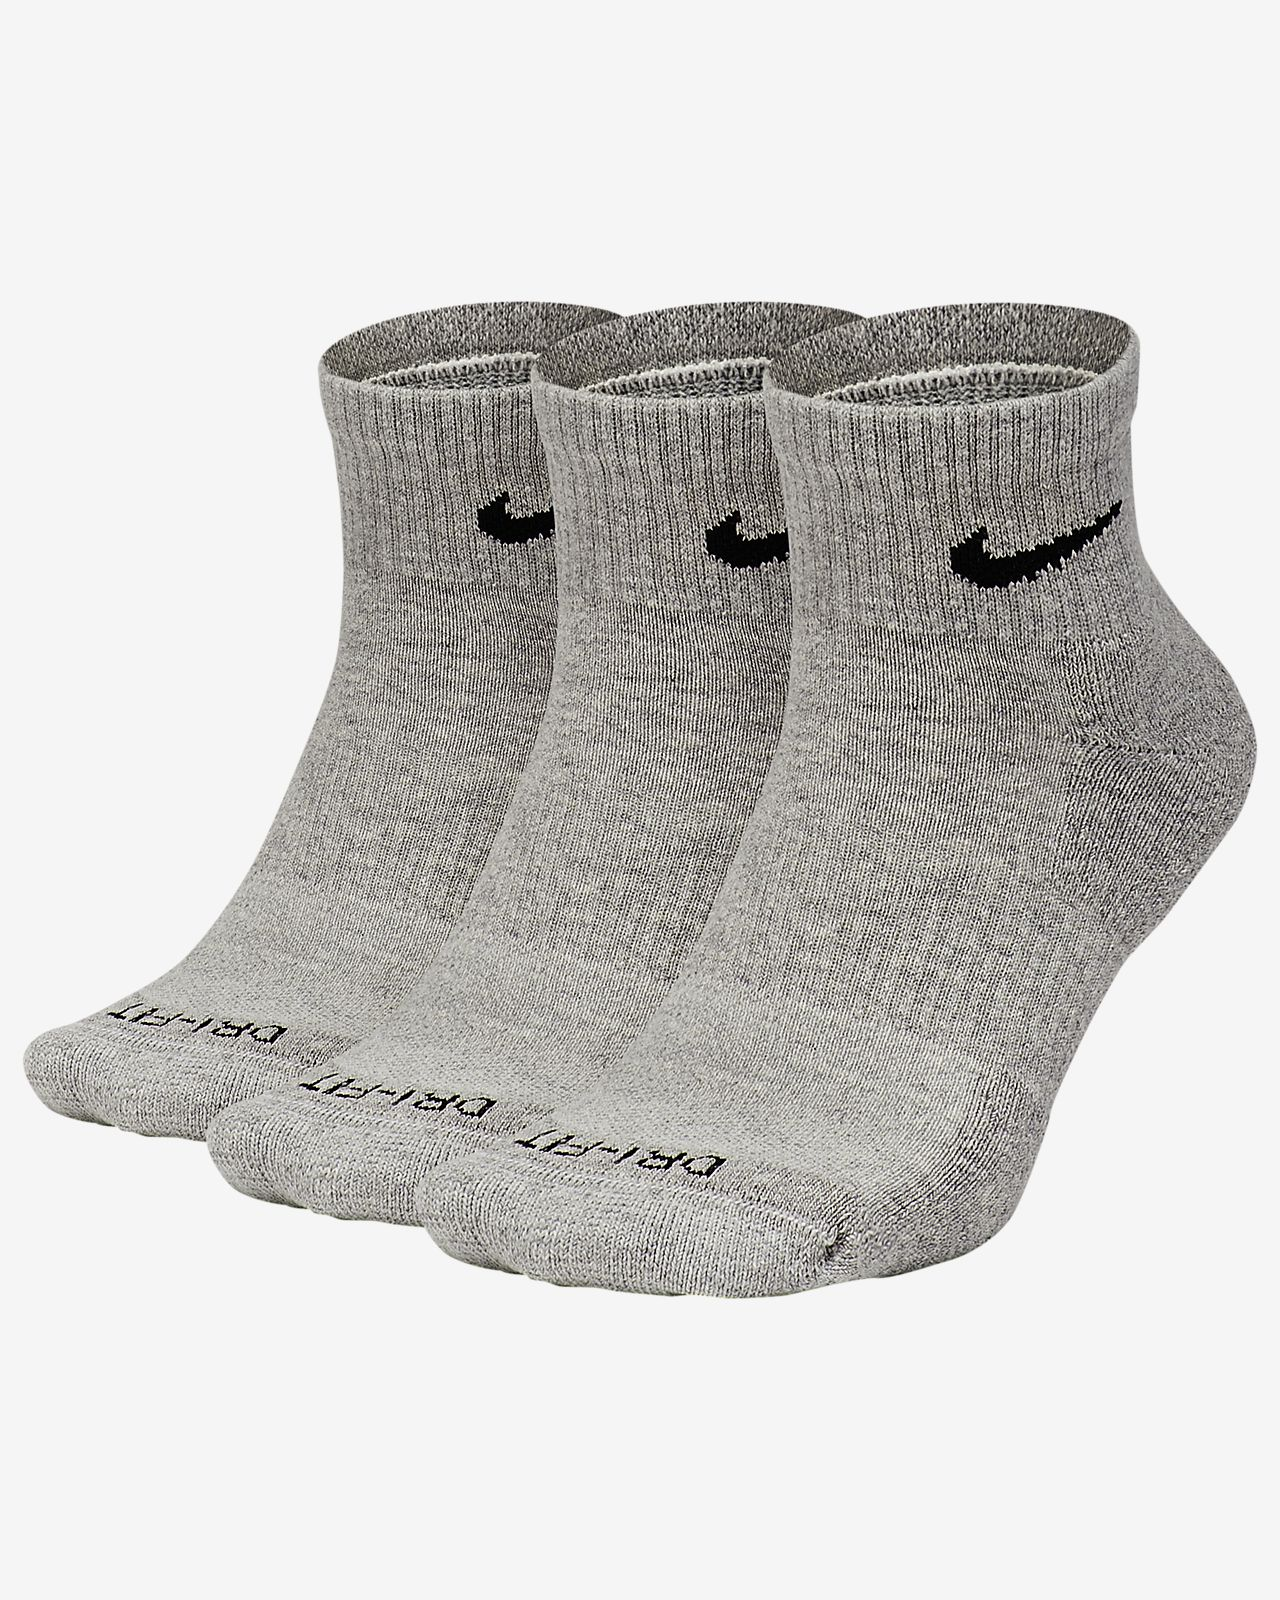 Nike Everyday Plus Training Cushion Ankle Socks (3 Pairs)